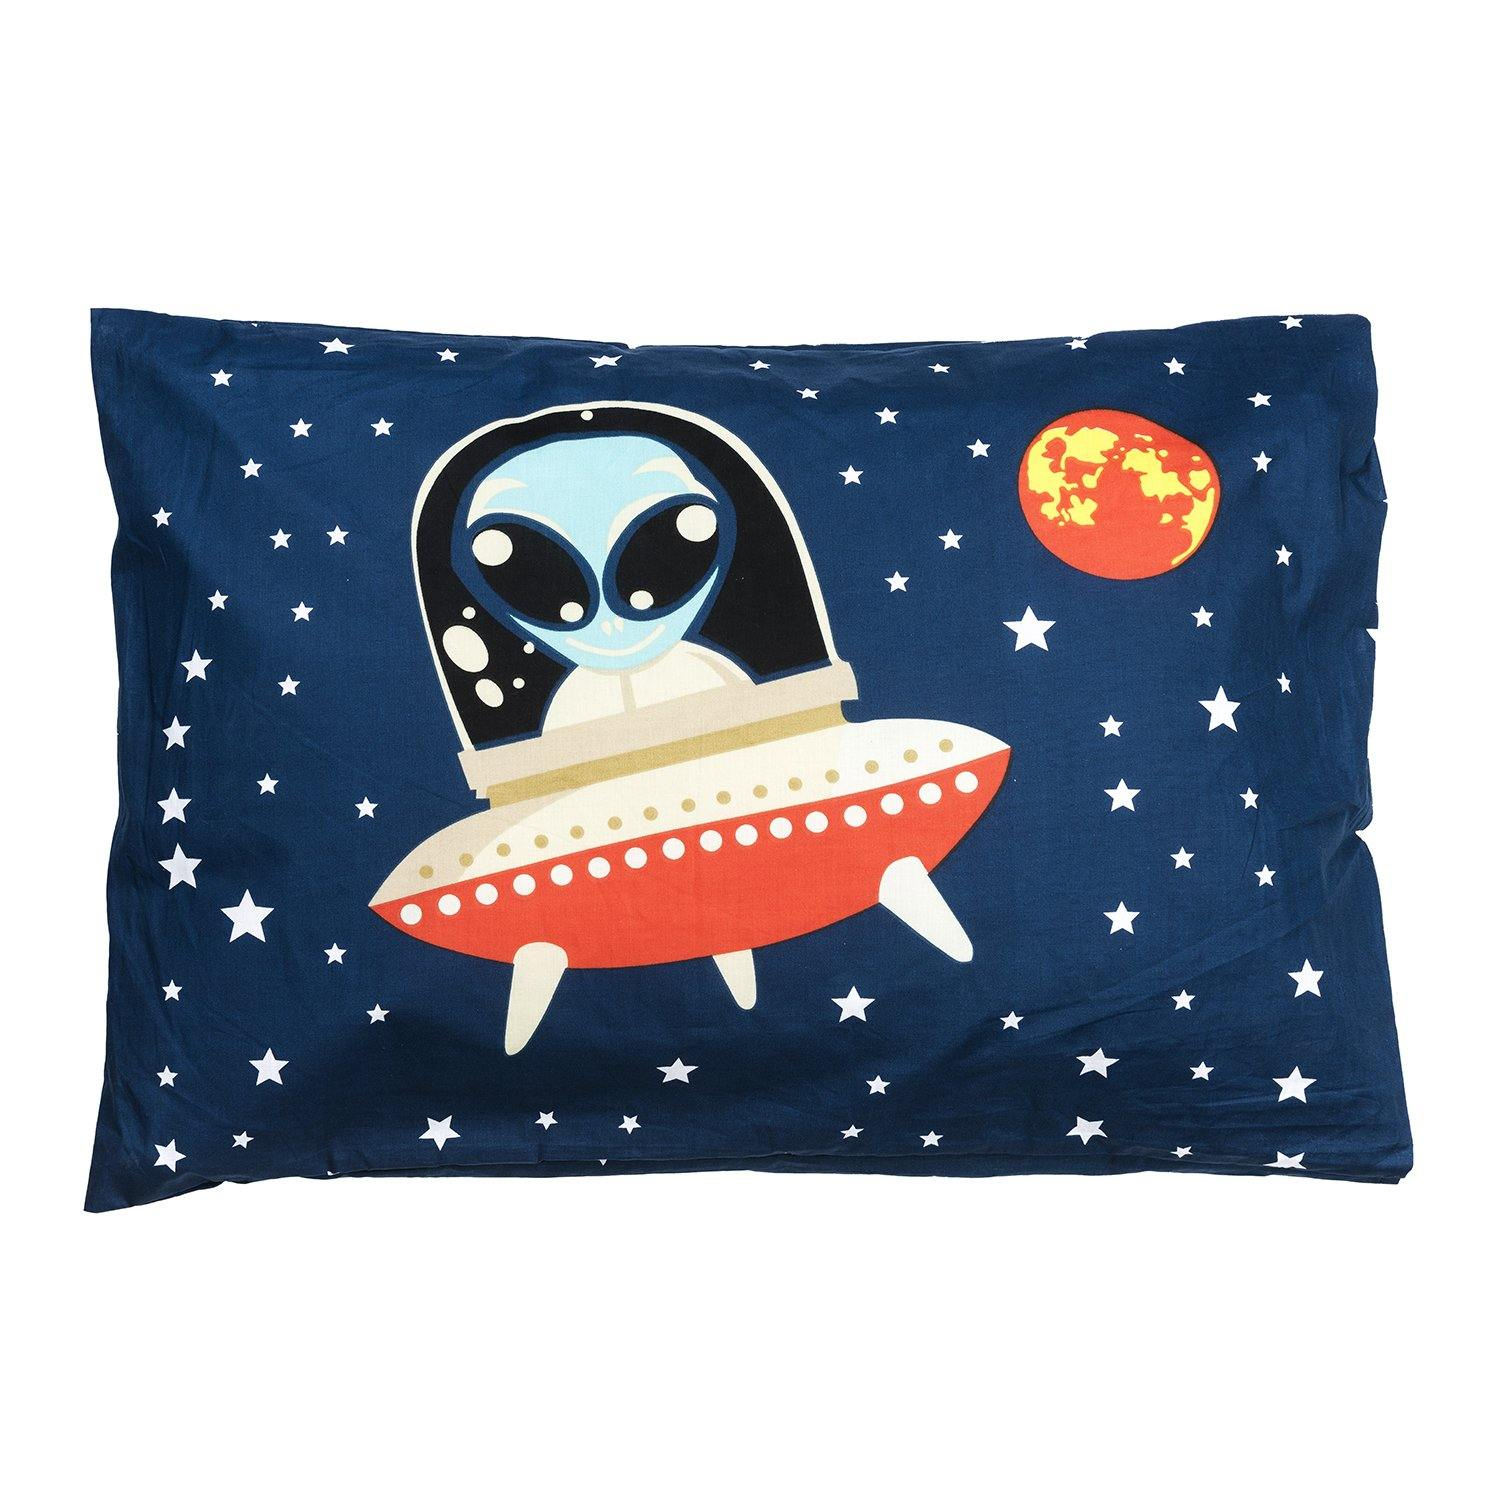 Space pillowcase 2